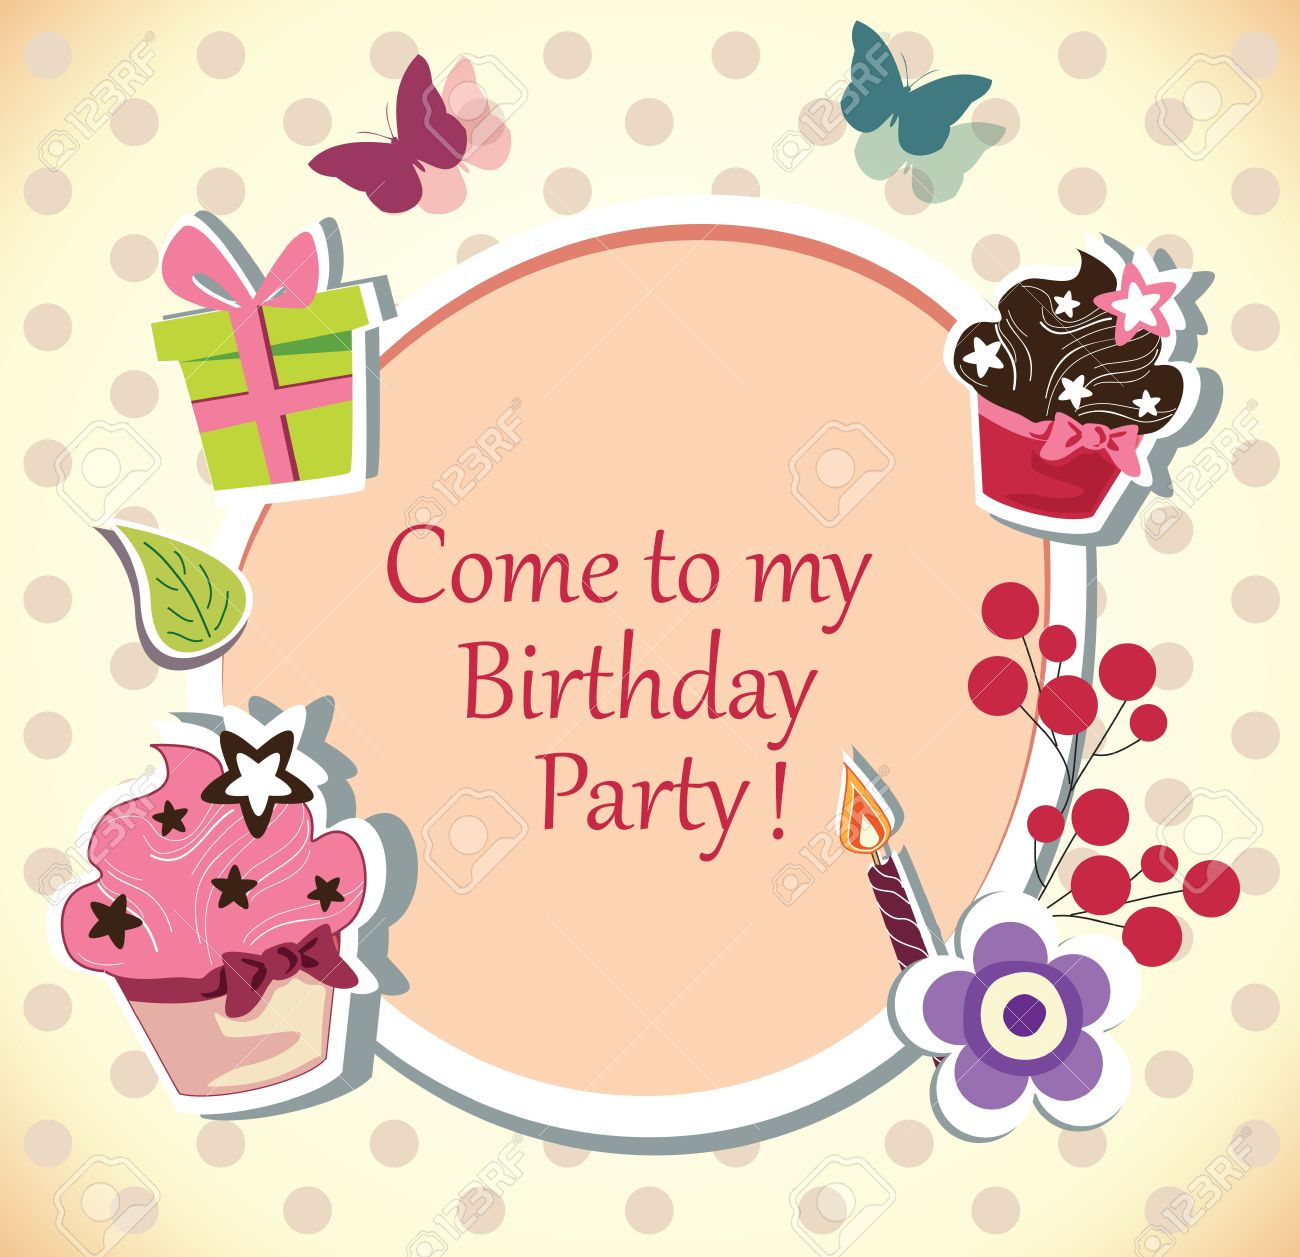 Birthday party invitation card royalty free cliparts vectors and birthday party invitation card stopboris Images